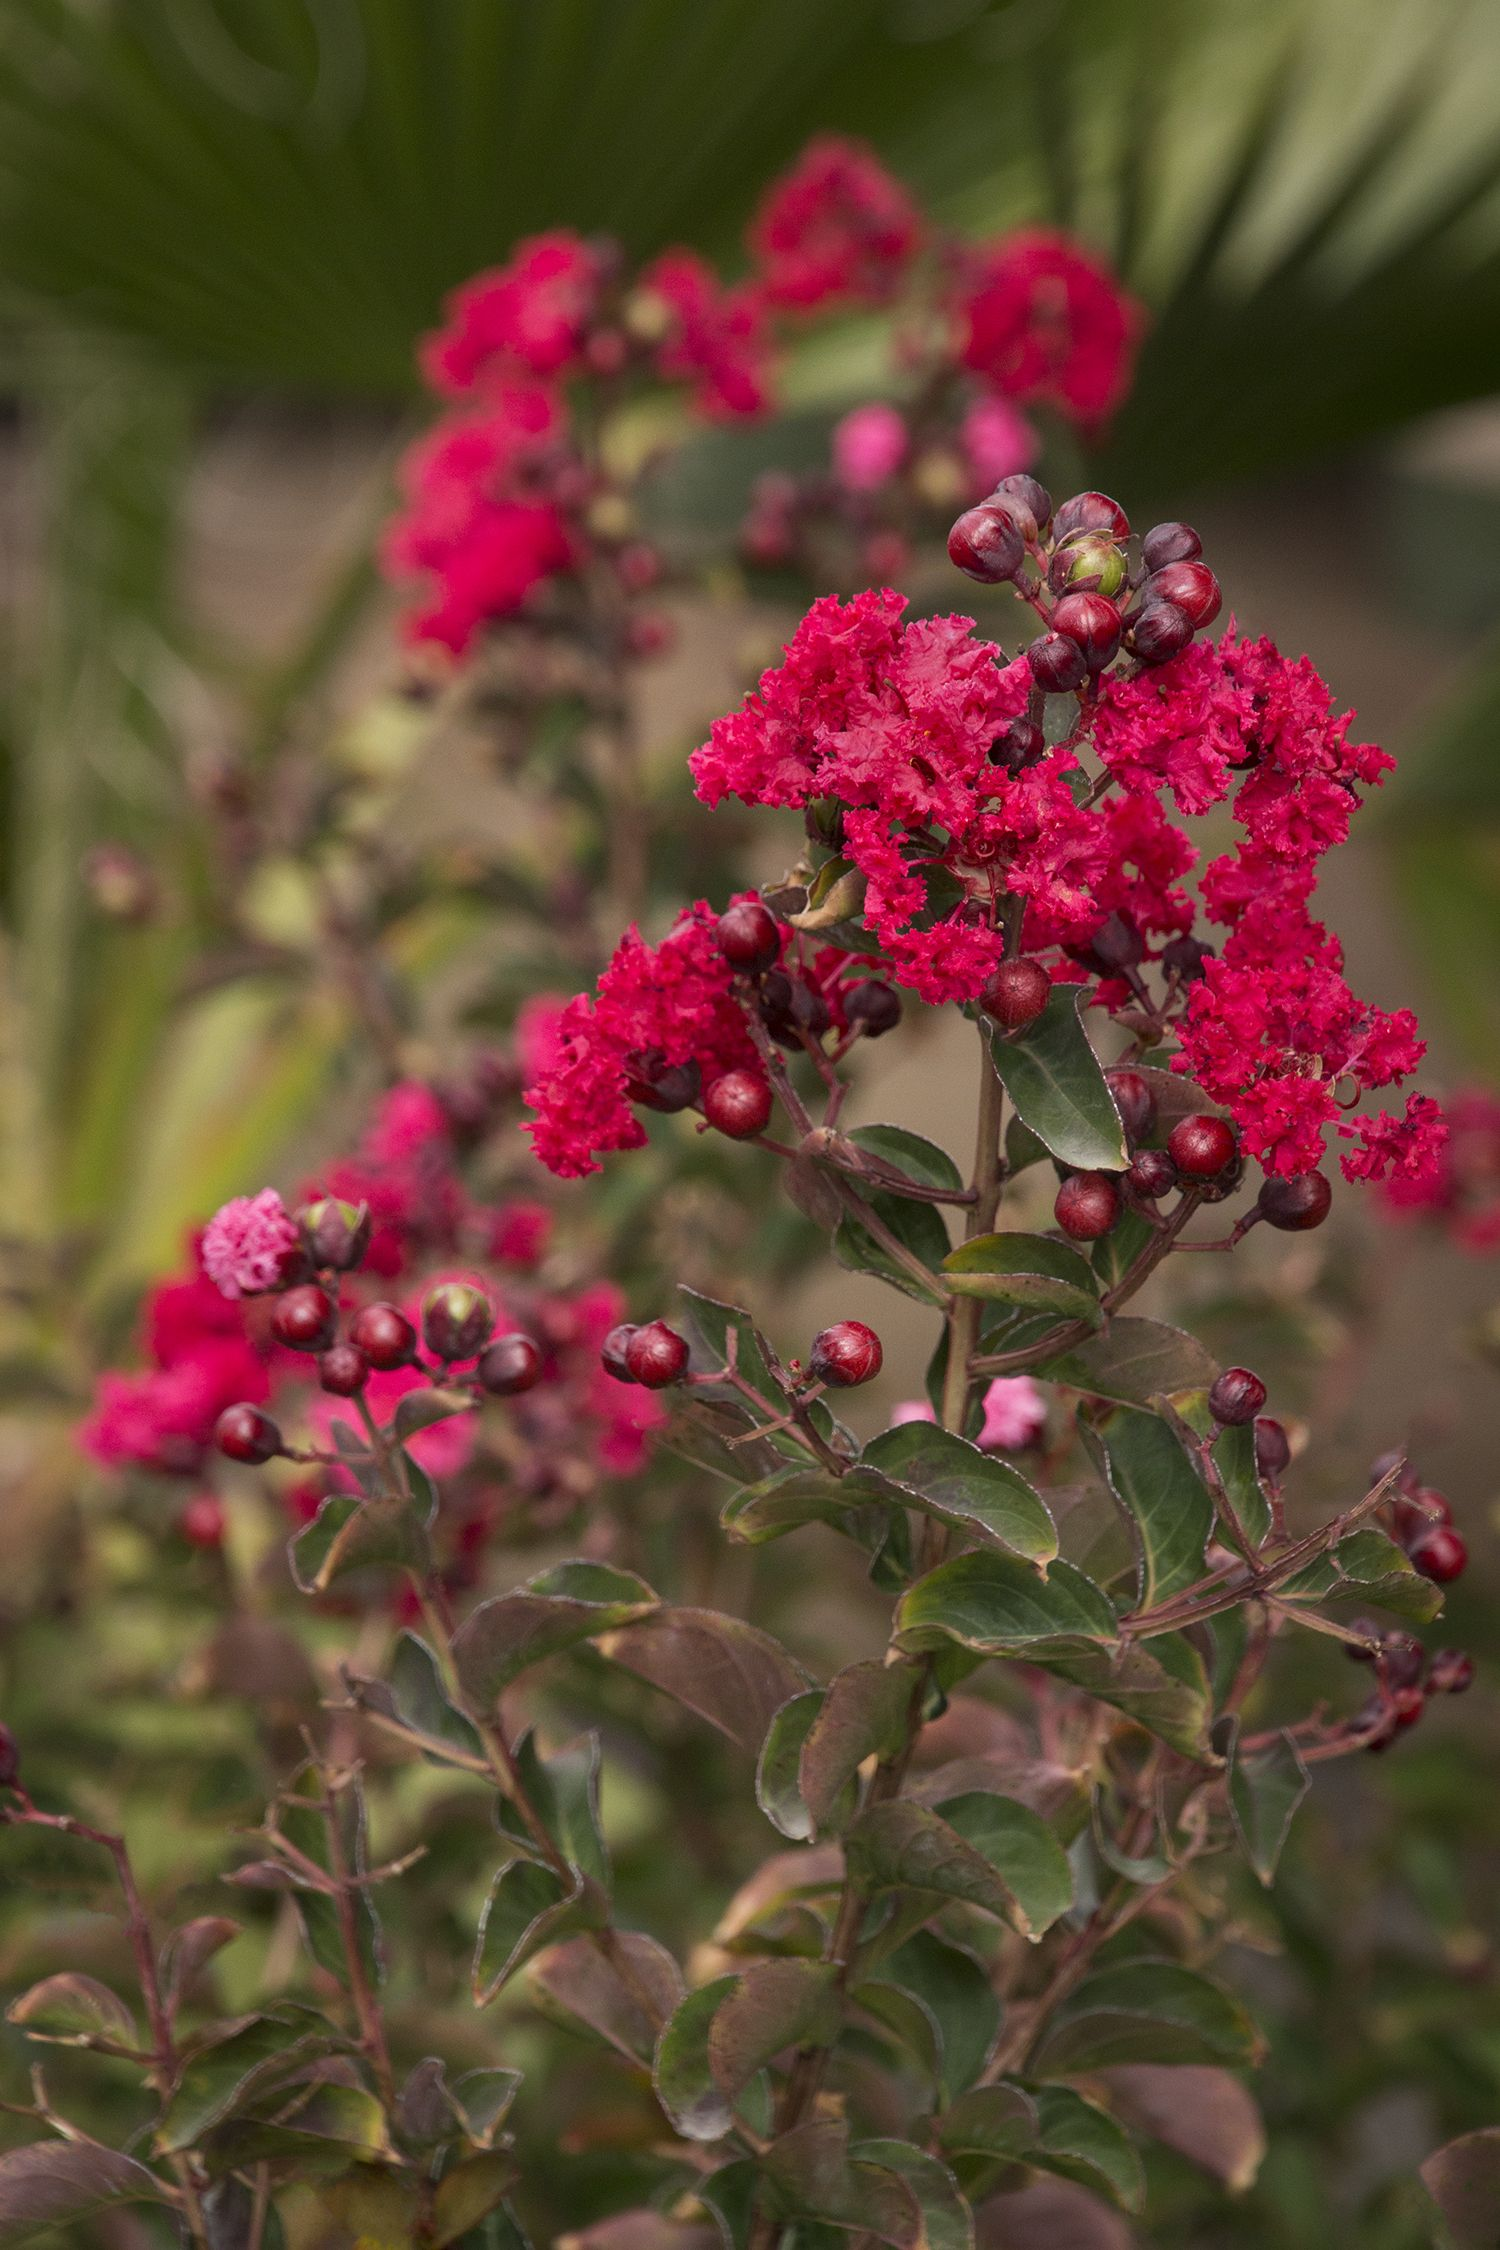 Attractive Ornamental Shrub Or Small Tree With Smooth Peeling Bark